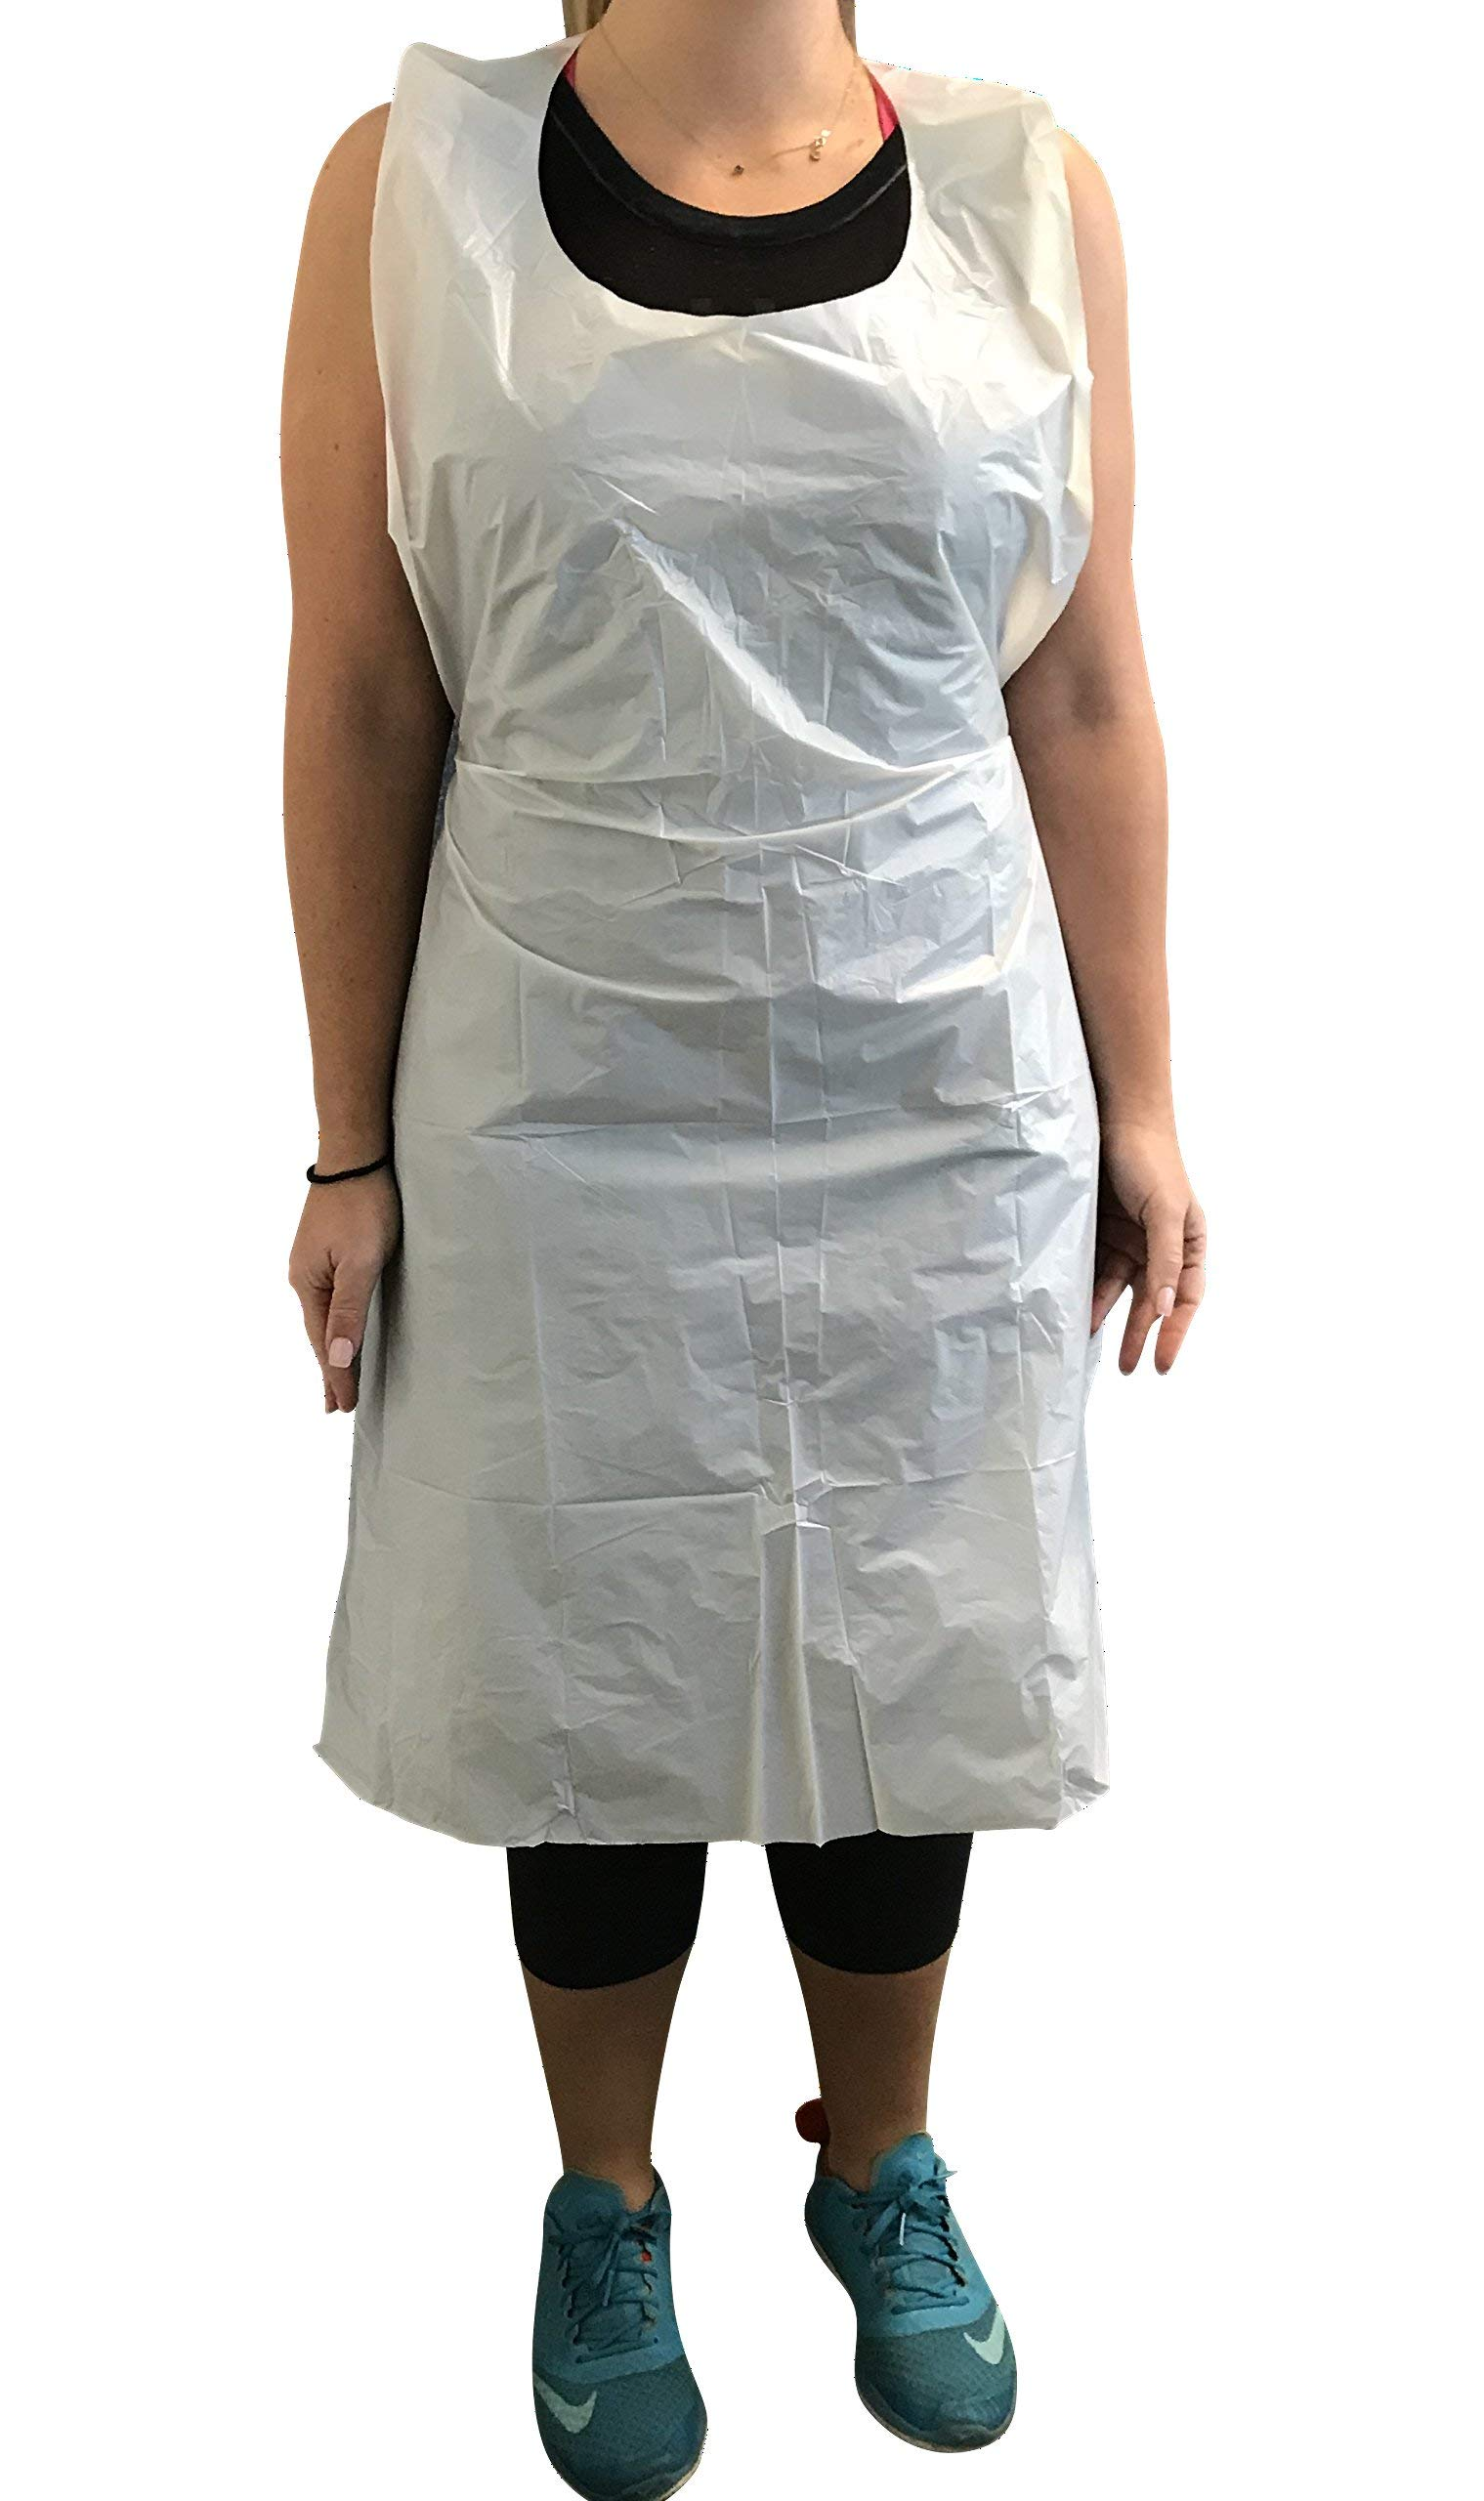 KingSeal Disposable Poly Aprons, 28 x 46 inches, 0.8 mils Thick, Individually Packed, White, Bib Style - 1 Box of 100 Aprons (100 Aprons Total)